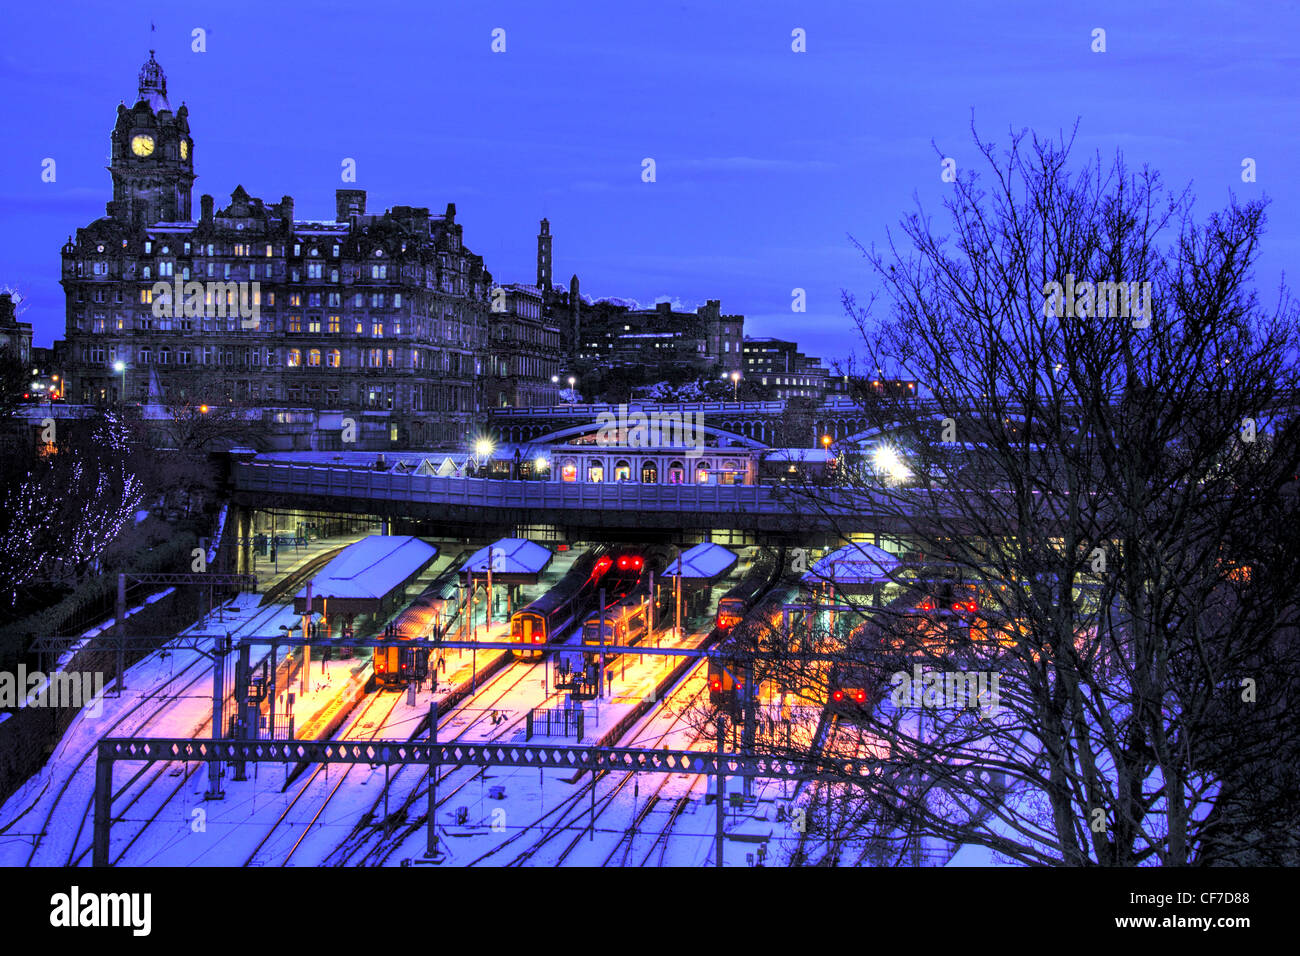 Waverley,station,at,dusk,in,winter,snow,Princes,St,Edinburgh,Scotland,UK,mainline,main,line,railway,station,train,gotonysmith,blue,evening,night,shot,red,lights,signals,signal,platforms,RF,hotel,clock,national,british,rail,Edinburgh,and,Glasgow,Railway,LEcosse,Edimbourg,Schotland,Schottland,La,Scozia,Edimburgo,Escocia,Edimburgo,railroad,tour,tours,tourist,BR,railtrack,Scotrail,scottish,independance,independence,home,rule,devolution,parliament,SNP,national,party,@Hotpixuk,Government,2014,Scots,vote,voting,gotonysmith,Tour,tourist,tourism,tourist,attraction,Scotland,Capital,City,Scots,Scottish,icon,iconic,@Hotpixuk,HotpixUk,Tour,tourist,tourism,tourist,attraction,Scotland,Capital,City,Scots,Scottish,icon,iconic,@Hotpixuk,HotpixUk,Buy Pictures of,Buy Images Of,Buy Pictures of,Buy Images Of,Tourist Attraction,city Centre,Tourist Attraction,city Centre